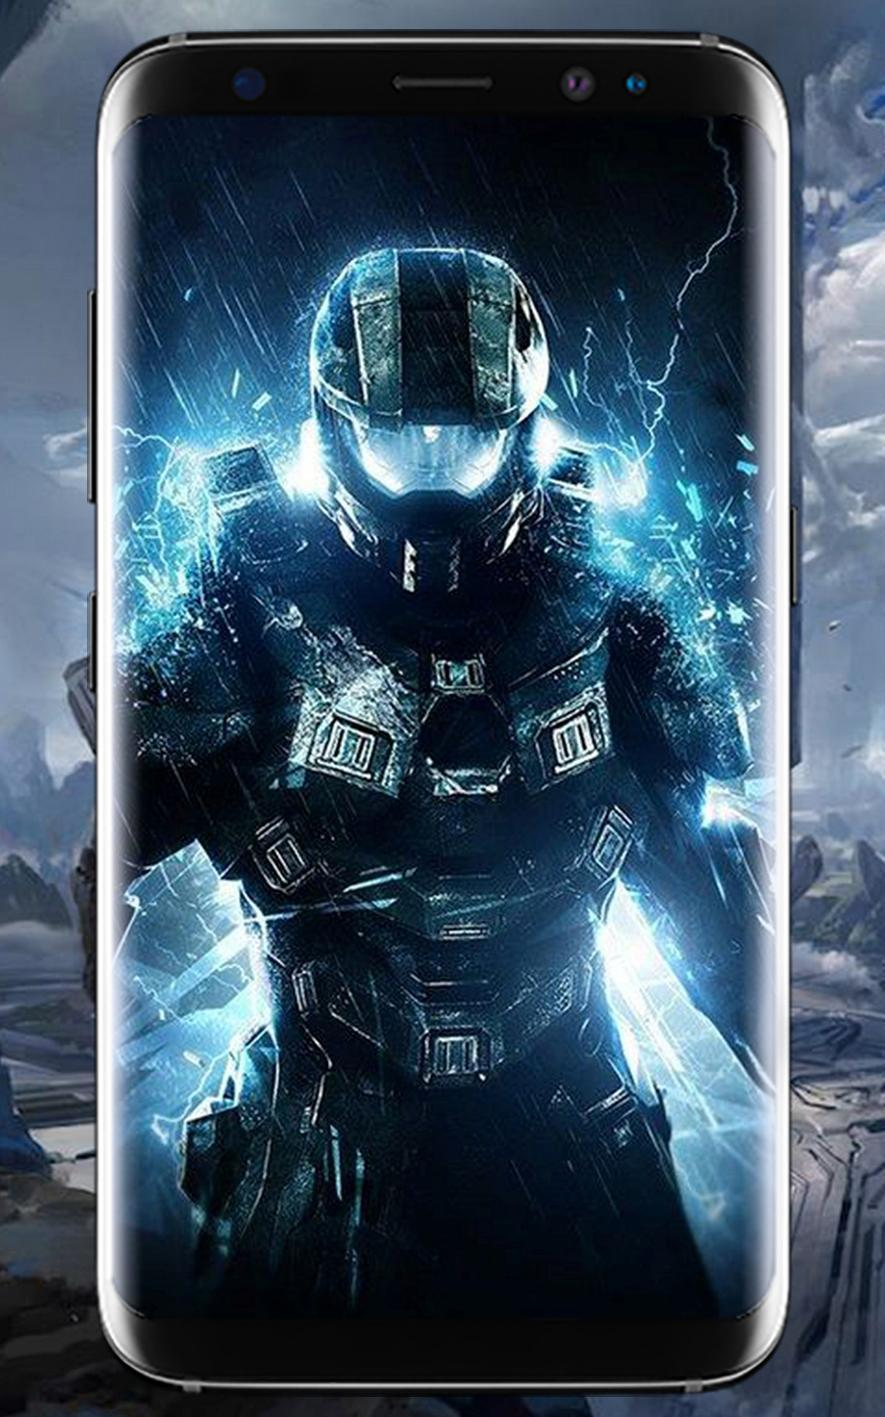 New Halo Wallpapers Hd 2018 For Android Apk Download